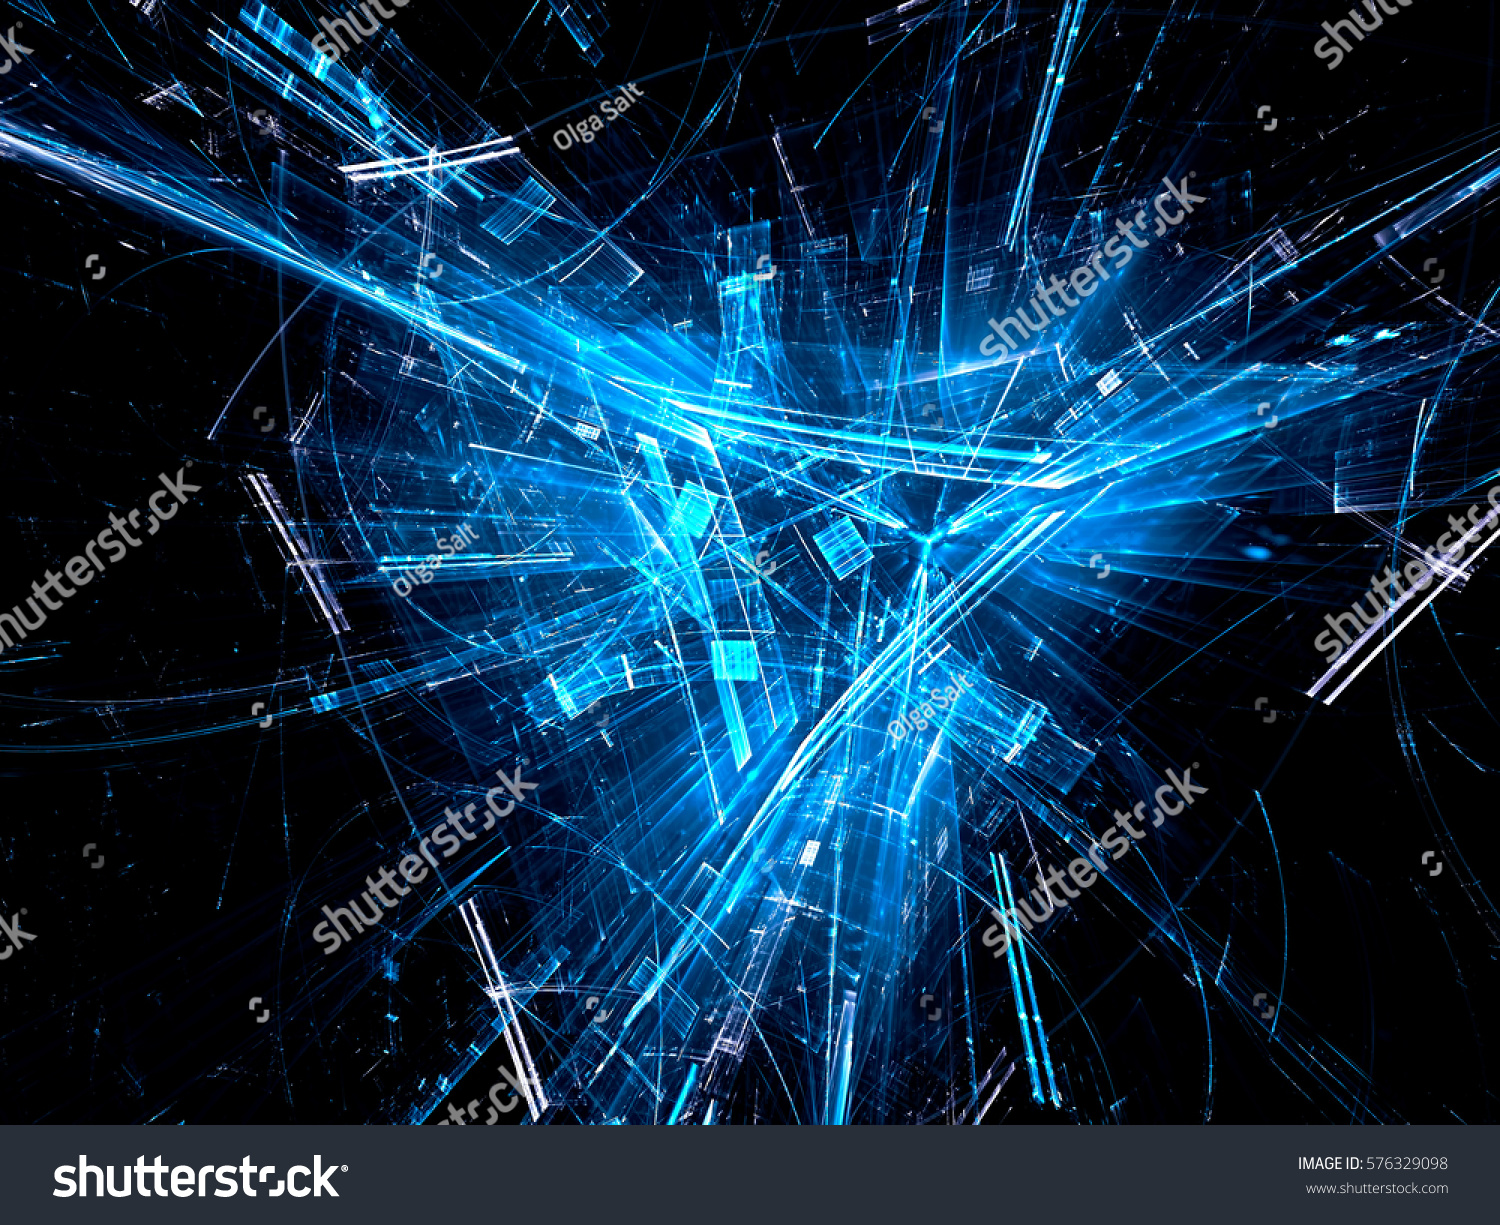 Abstract Technology Background With Light Effect: Technology Design Abstract Computergenerated Image Fractal